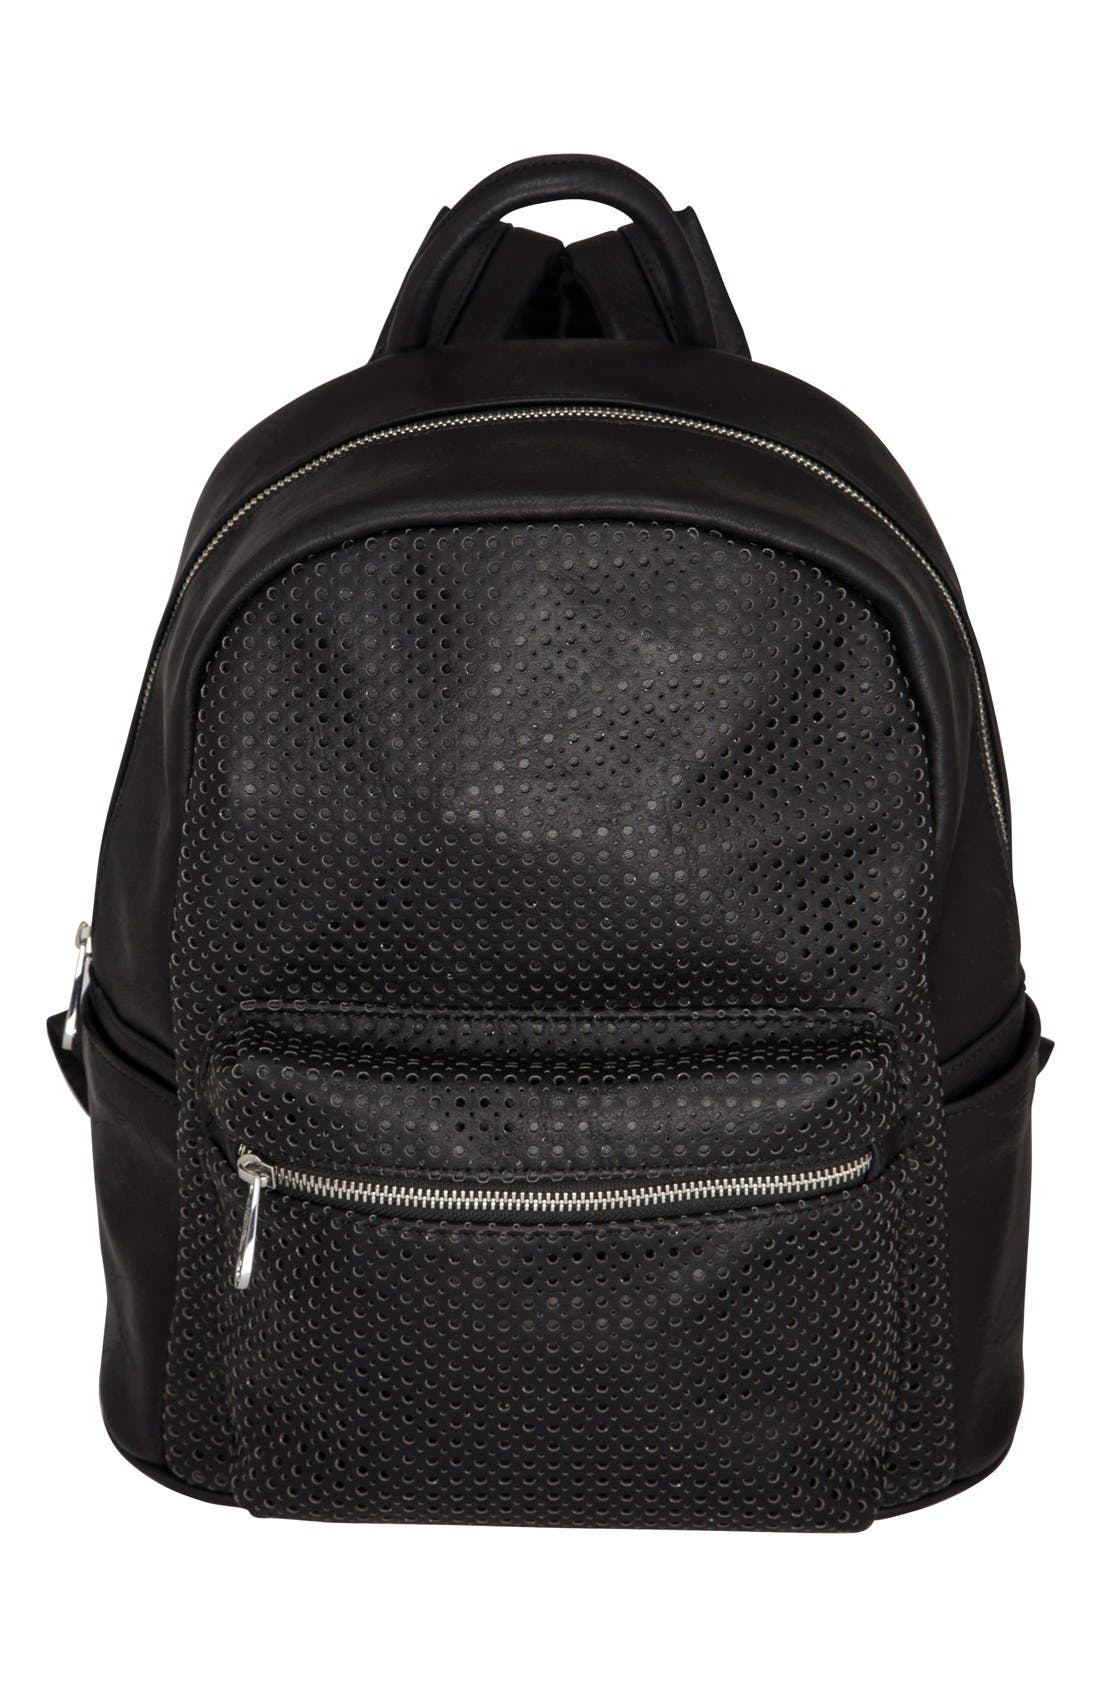 Main Image - Urban Originals 'Lola' Perforated Vegan Leather Backpack